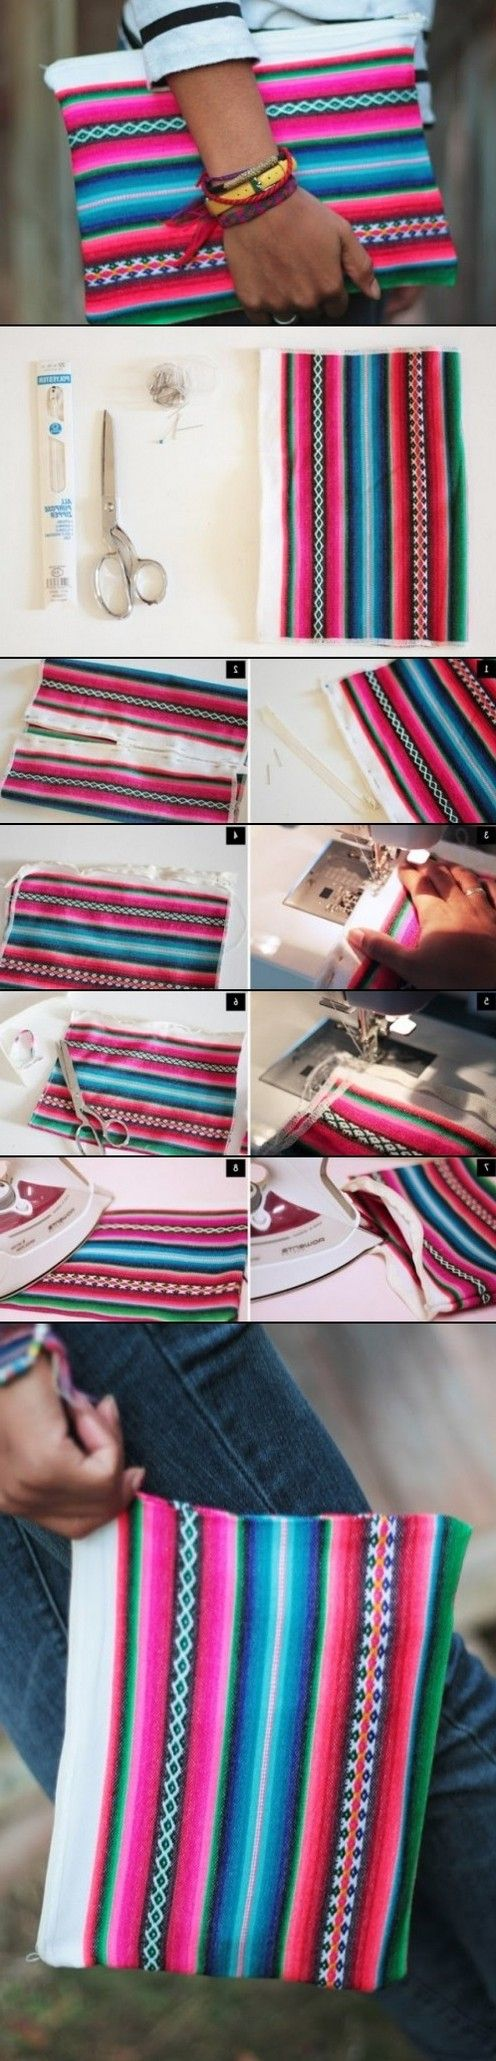 DIY Colorful Purse